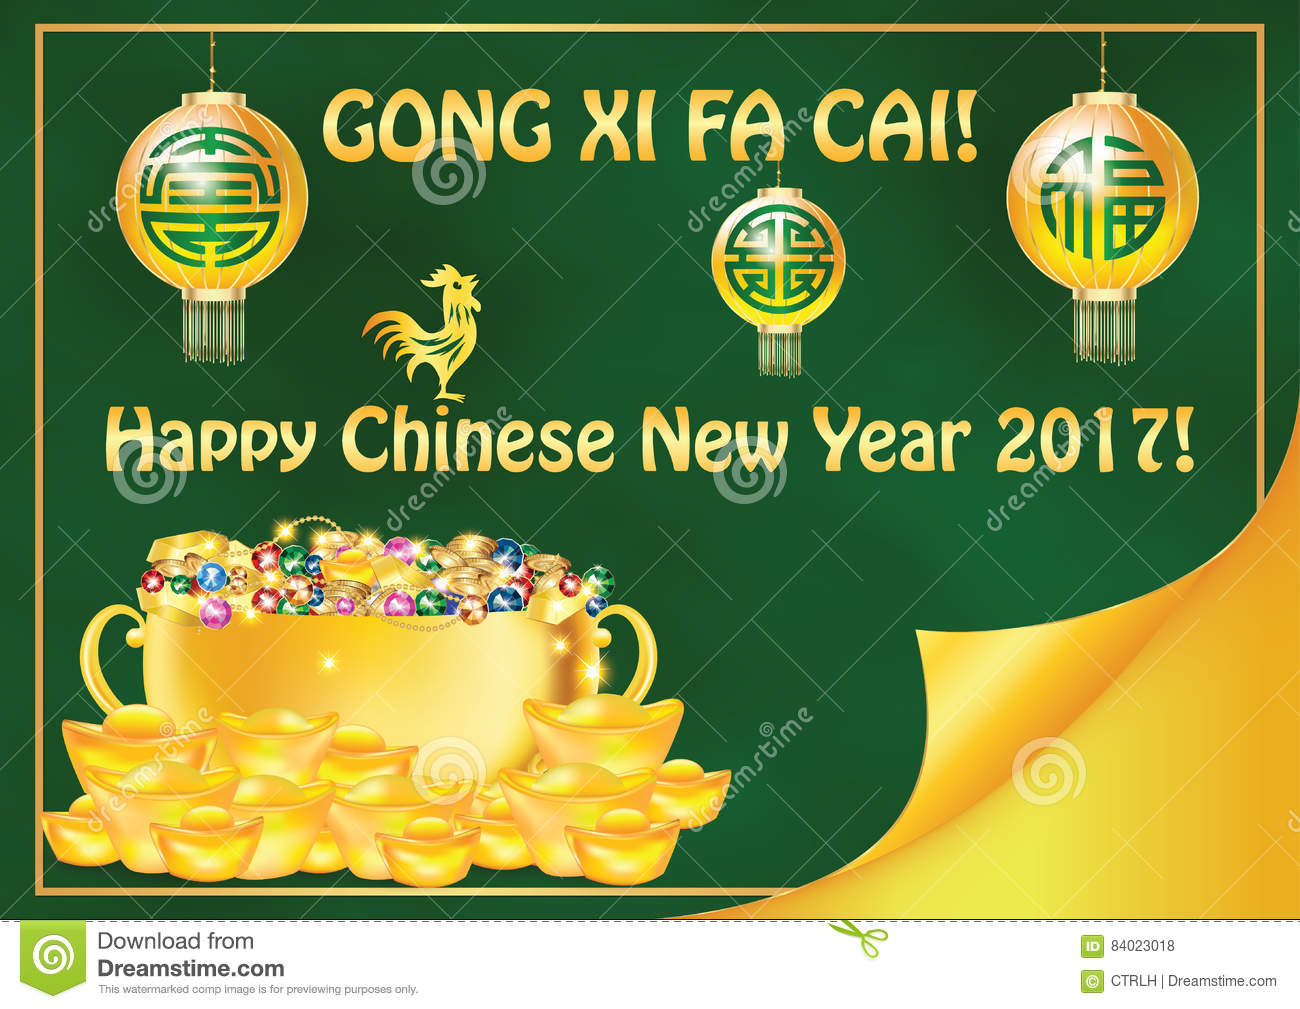 gong xi fa cai happy chinese new year 2017 year of the rooster greeting